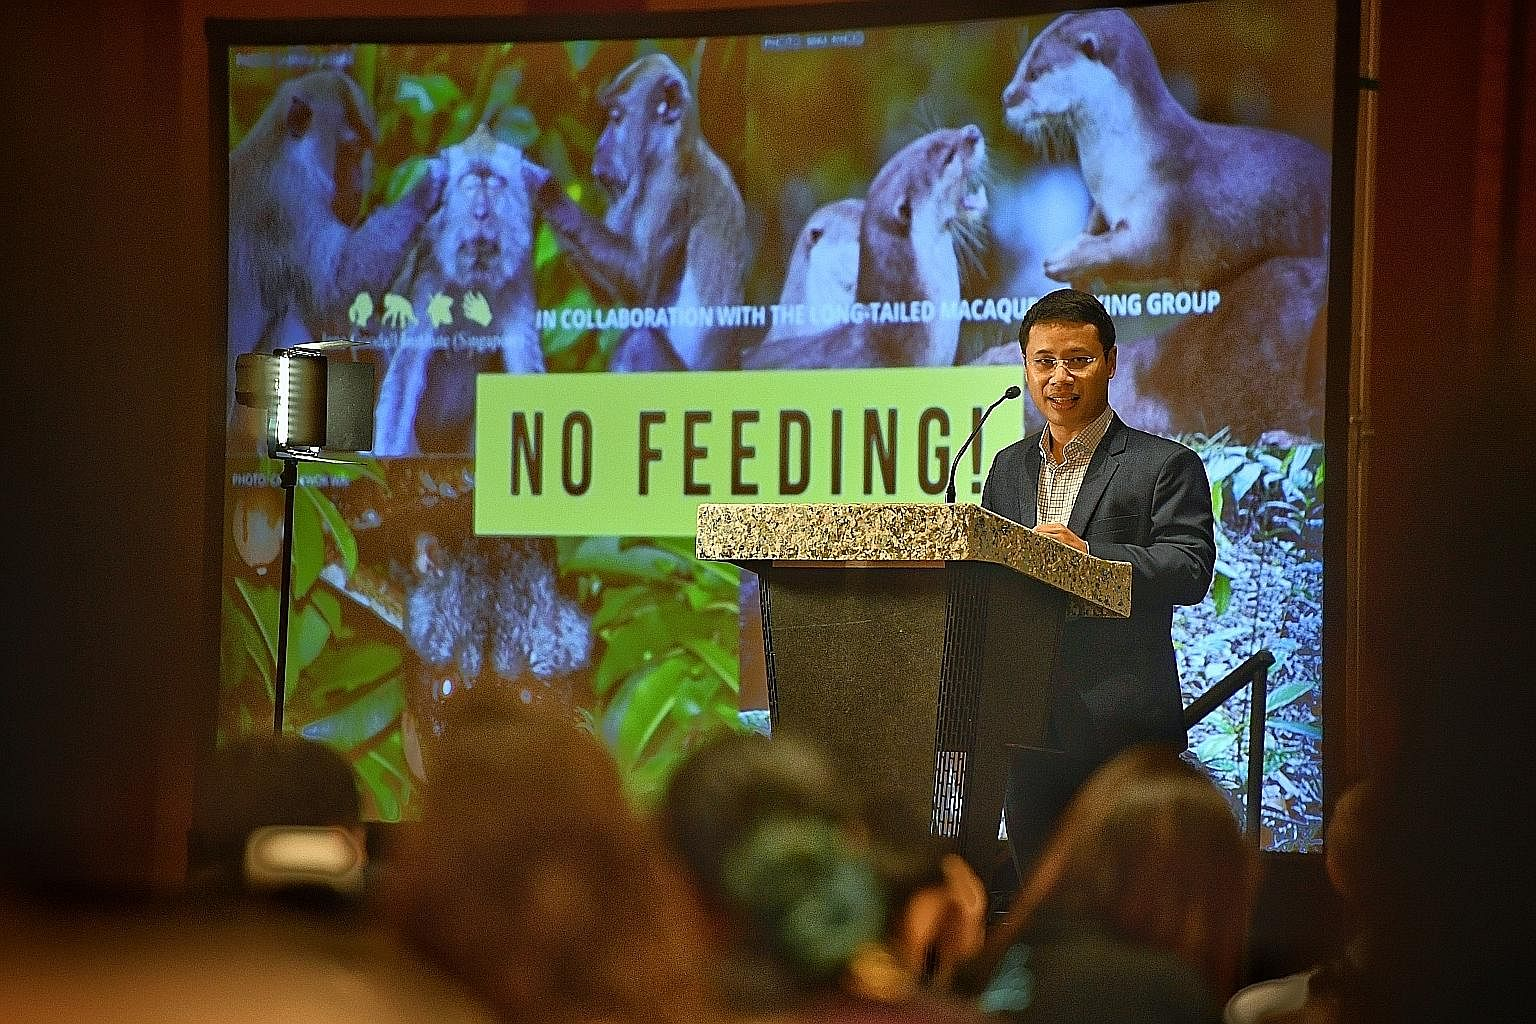 Conflicts and Mitigations Conference 2019 at Marina Bay Sands Expo and Convention Centre yesterday. The renowned primatologist discussed the pressing issue of human-wildlife conflic